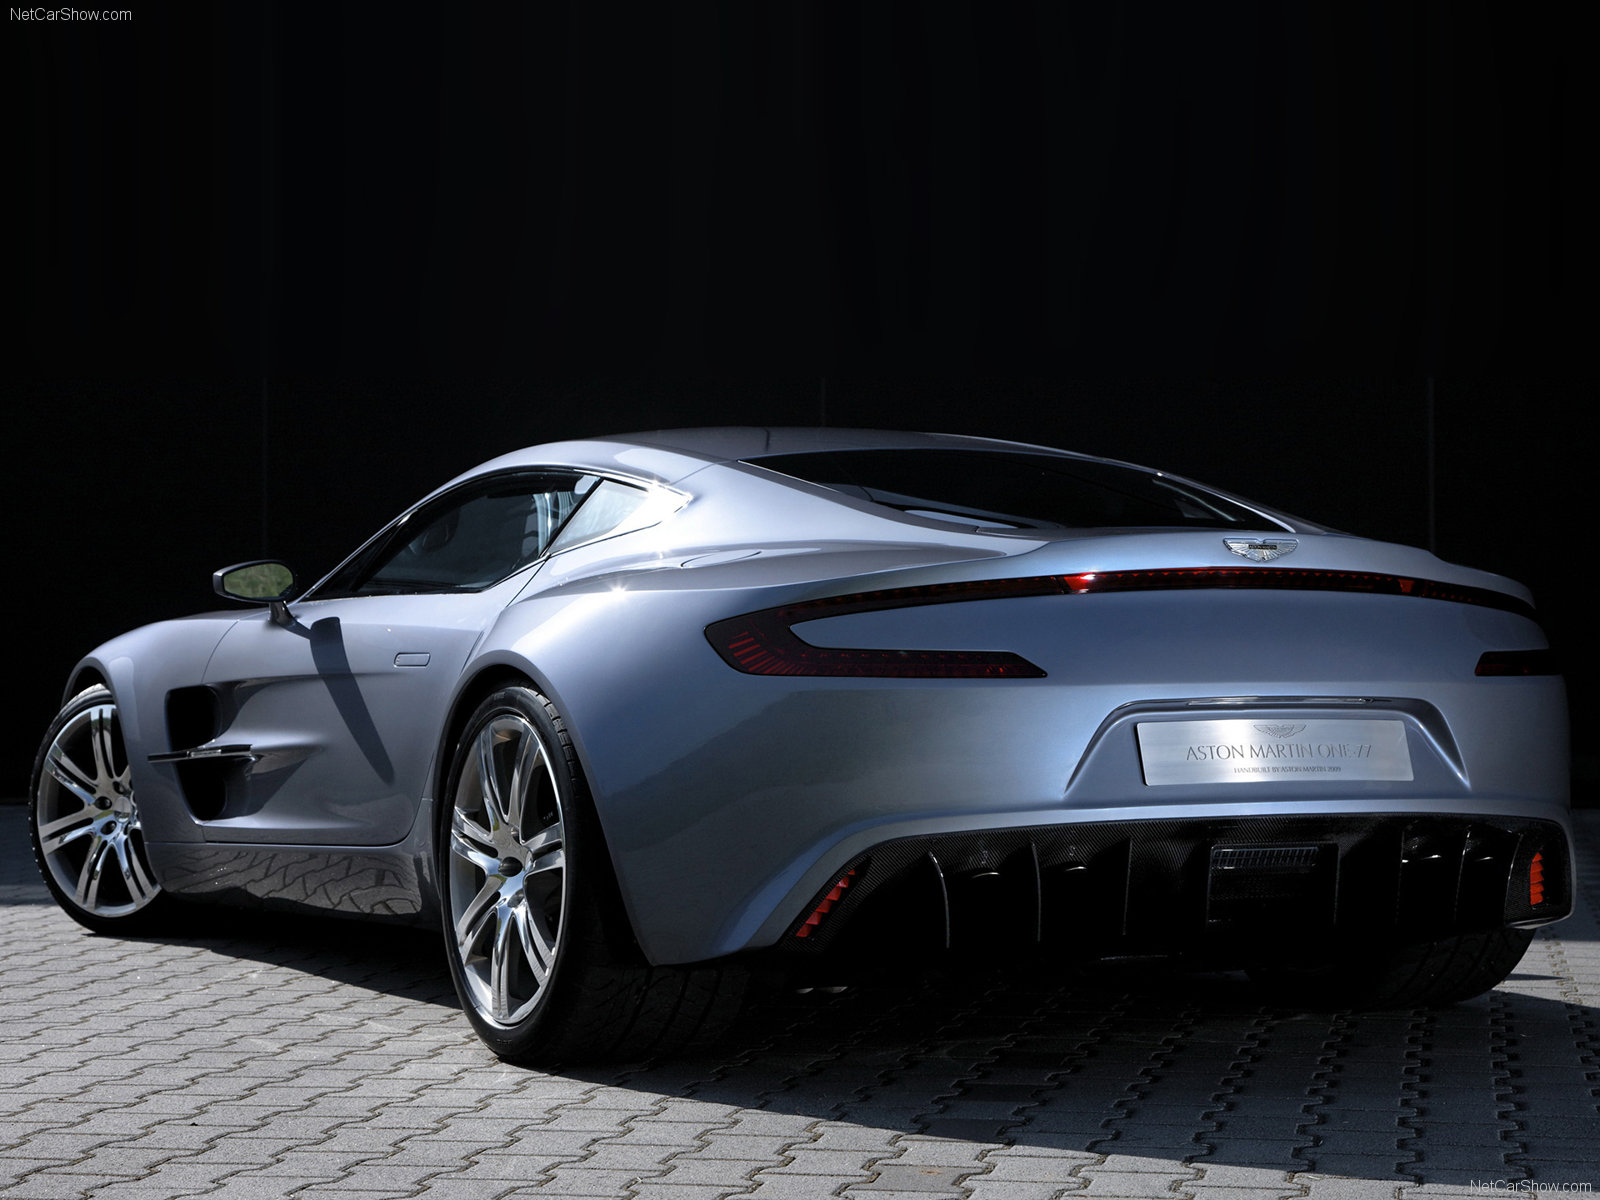 tuning aston martin one 77 coupe 2012 online accessories and spare parts for tuning aston. Black Bedroom Furniture Sets. Home Design Ideas